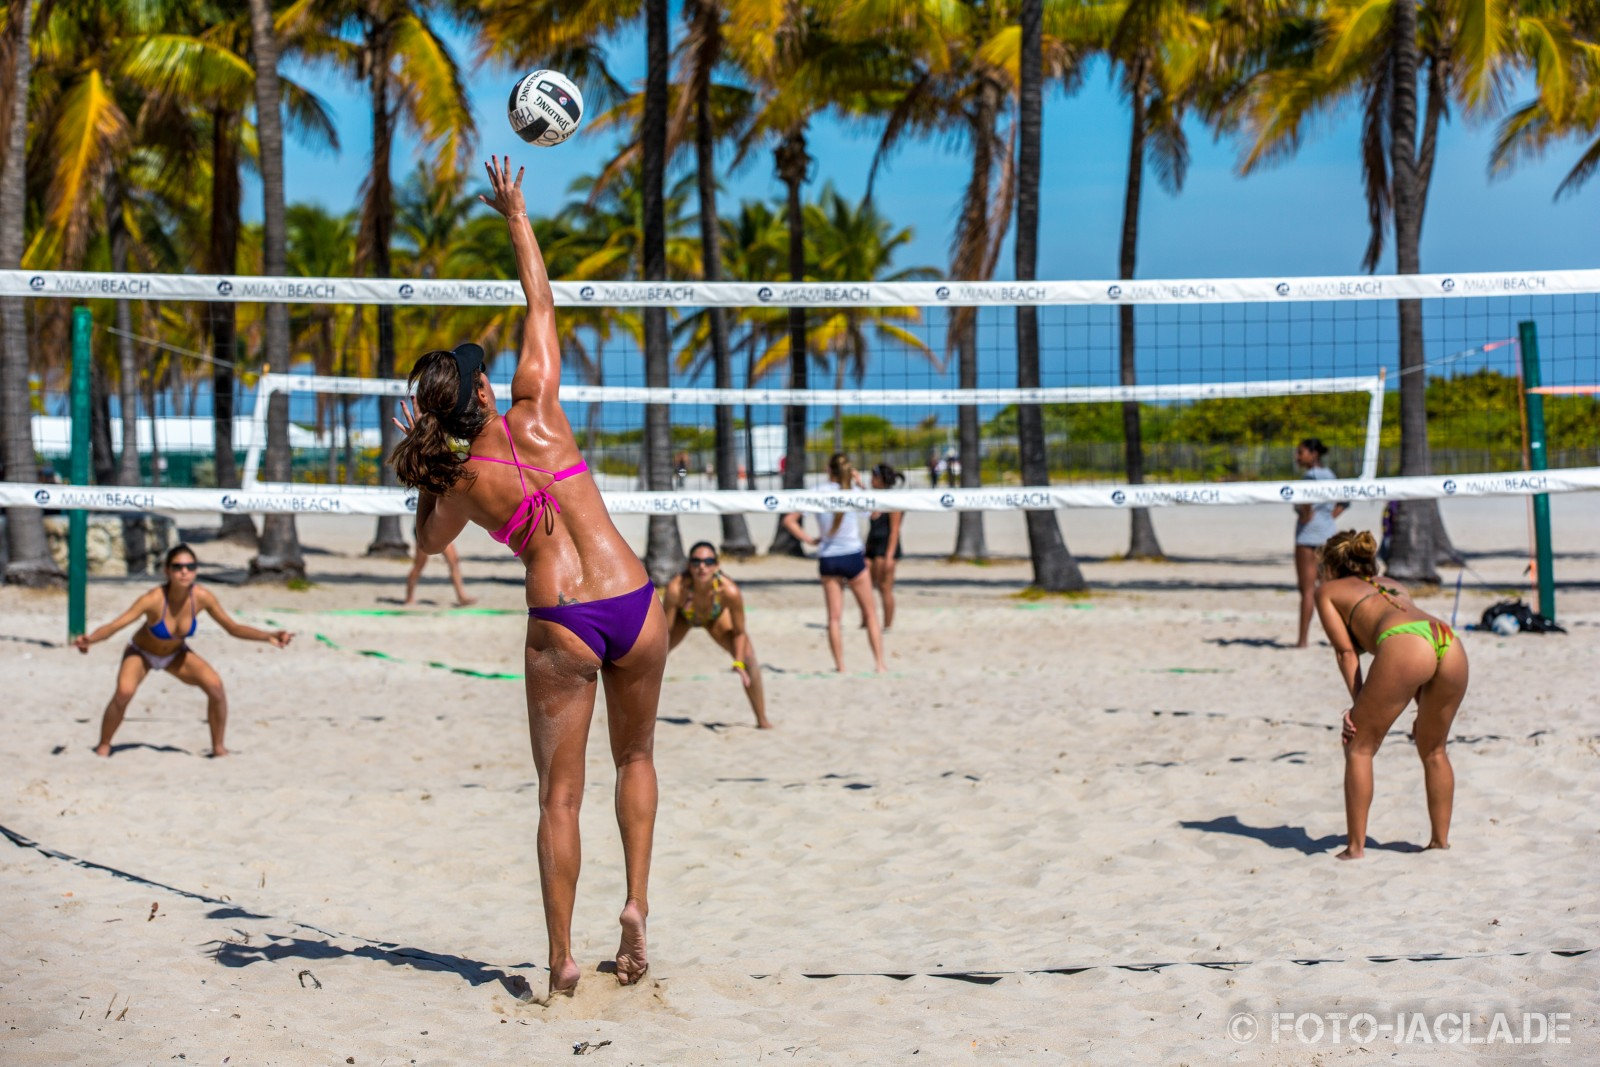 70000 Tons of Metal 2014 ::. Beachvolleyball @ South Beach, Miami